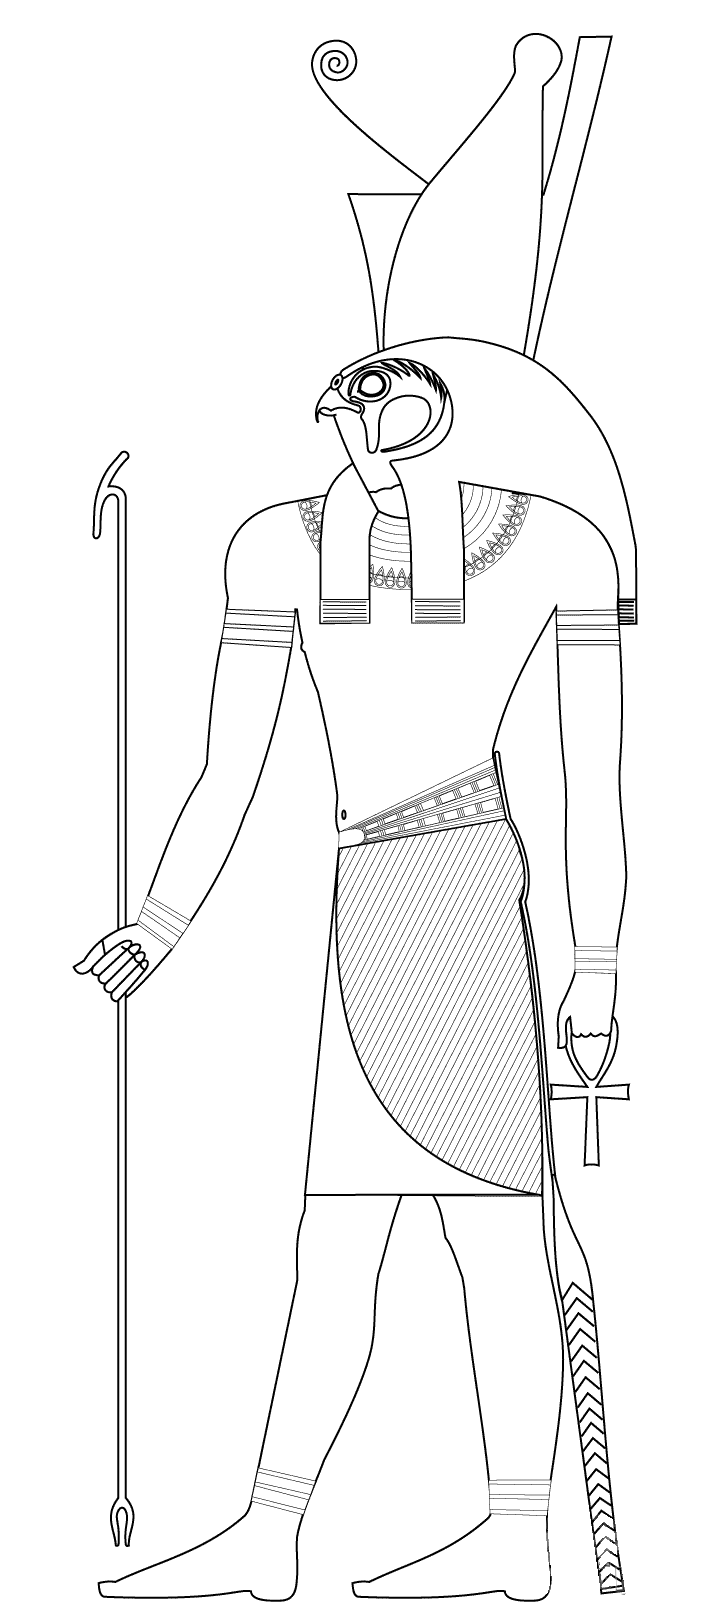 Egyptian Drawing Coloring Page - Free Egypt Coloring Pages ...   1620x709